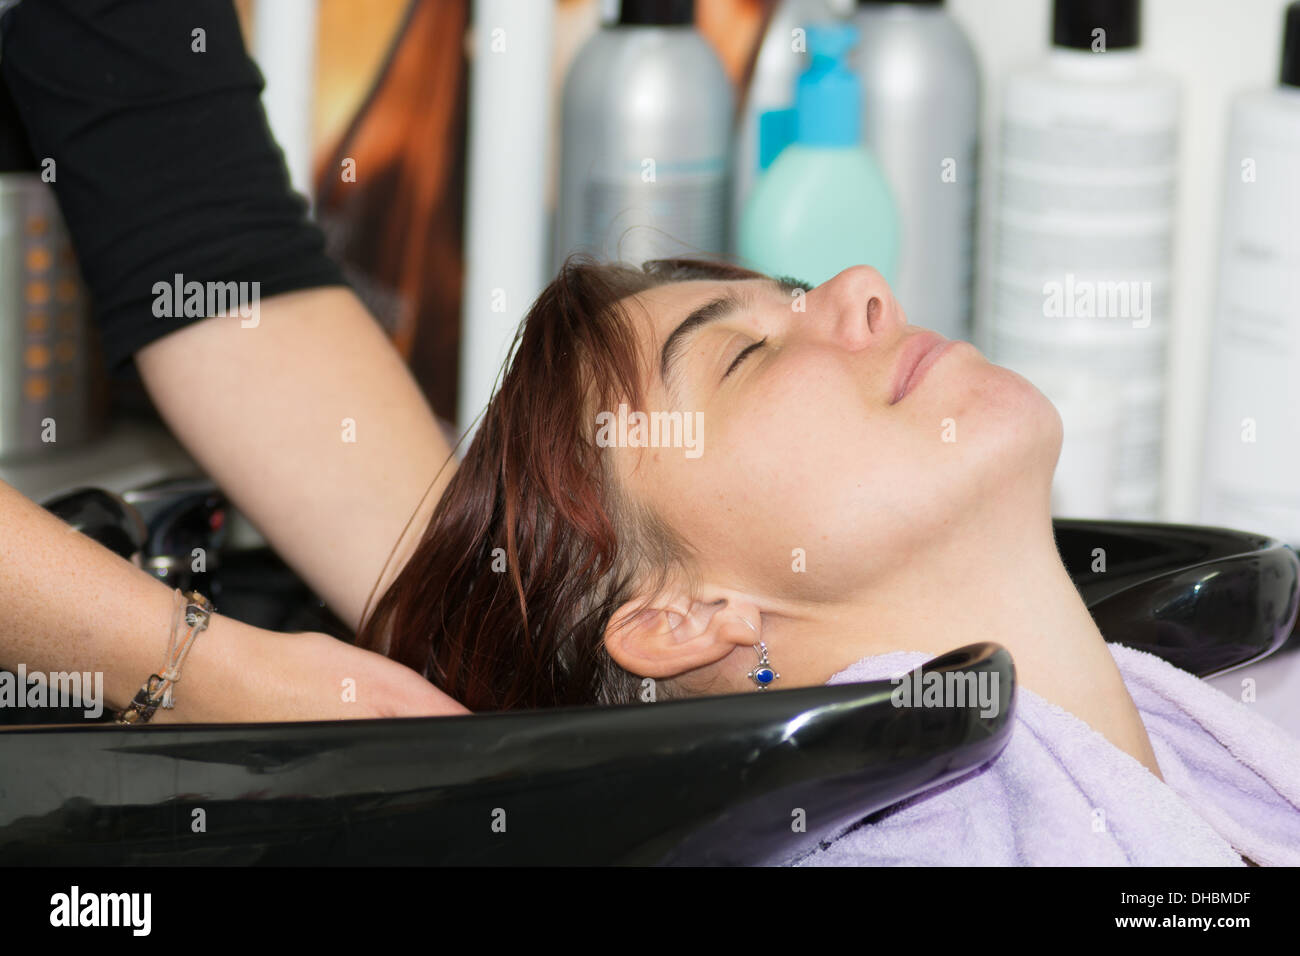 hair care - young woman enjoing hair washing at a hairdresser - Stock Image